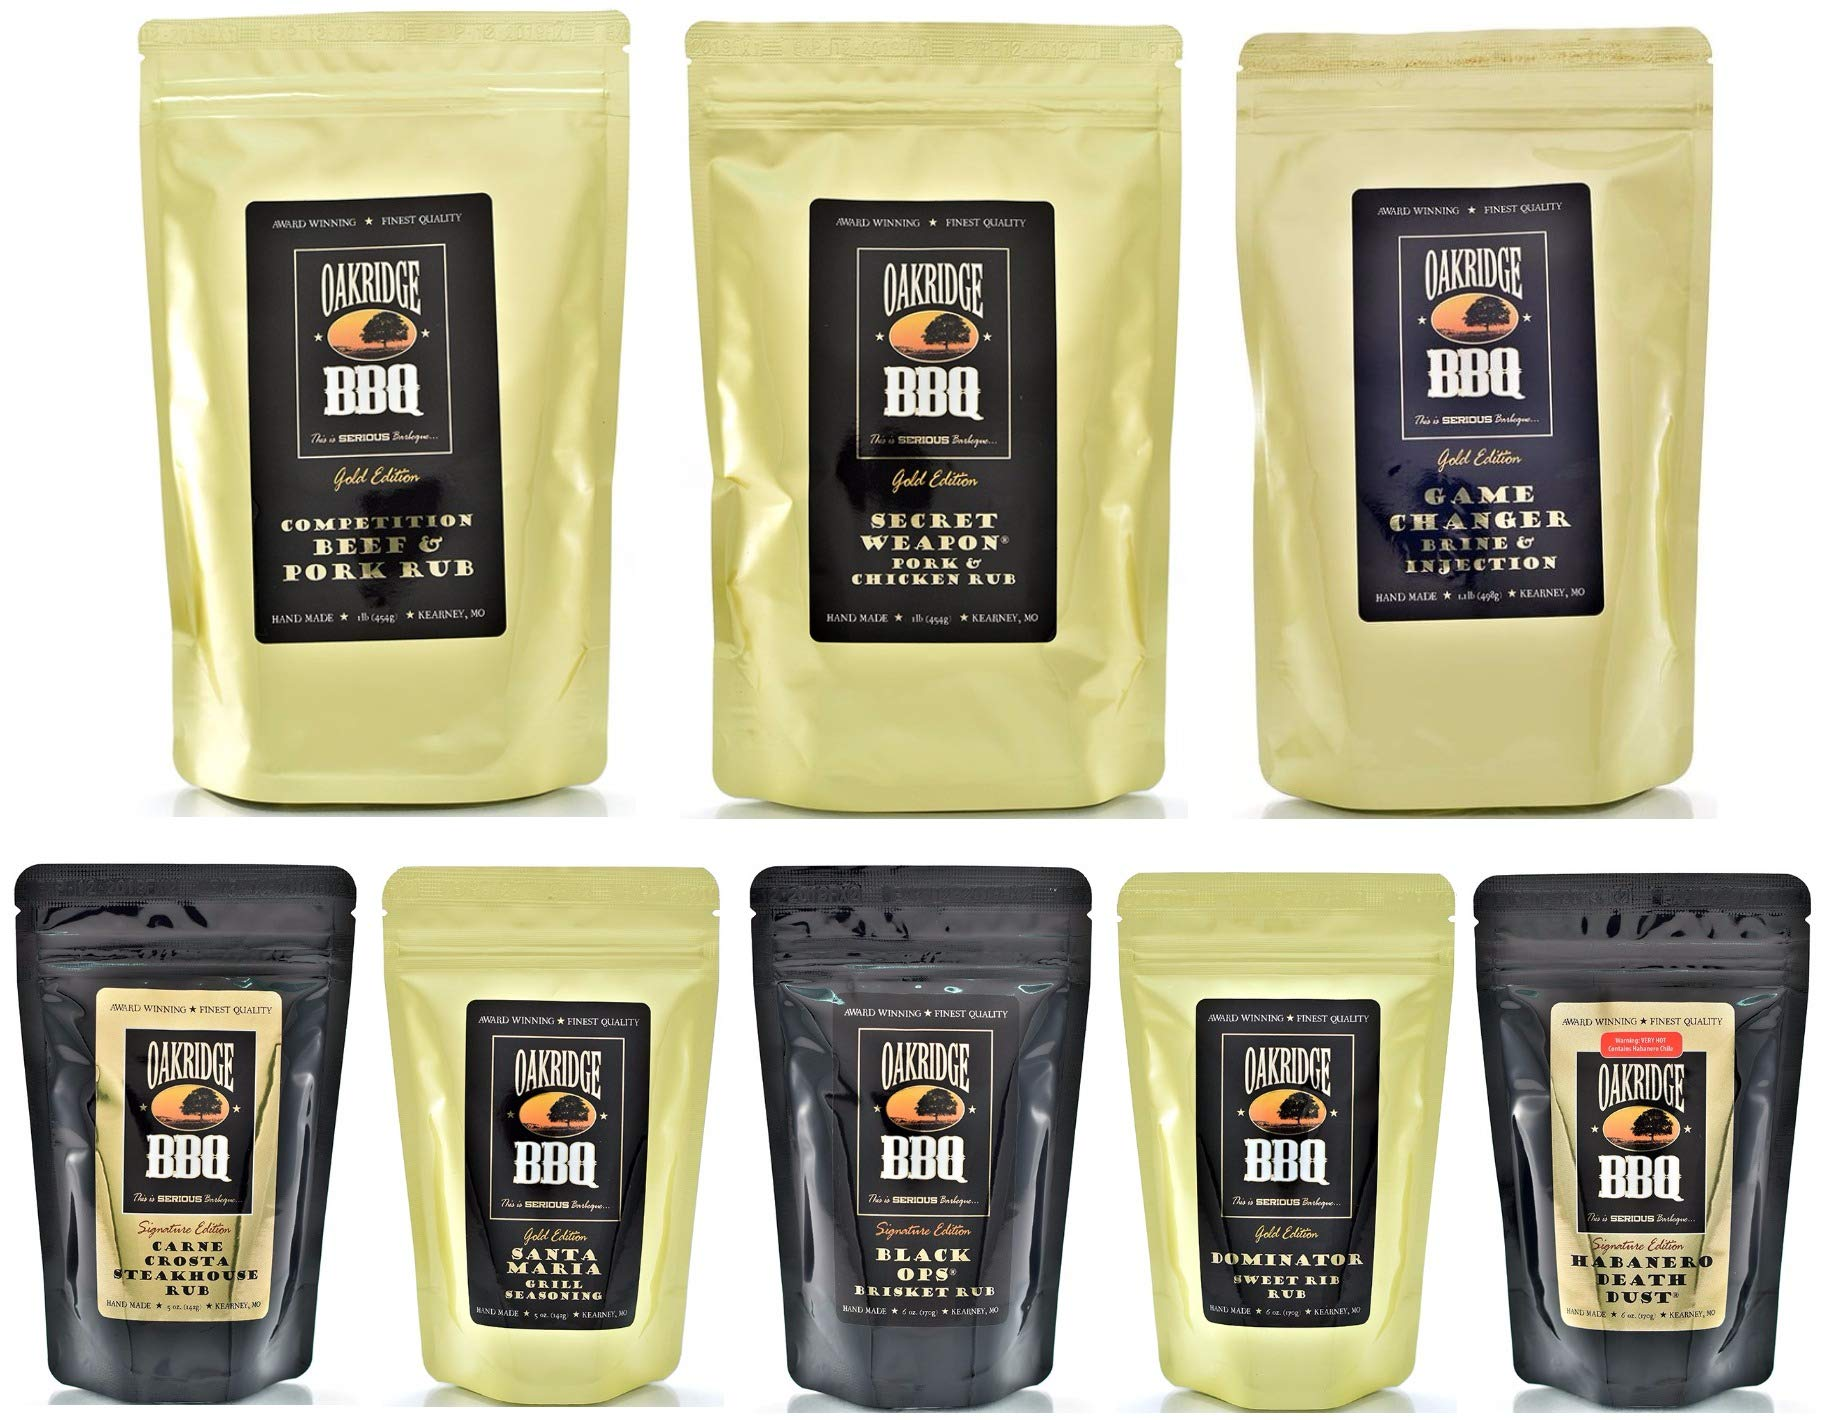 Oakridge BBQ The Ultimate Back Yard BarBQ Kit - Contains Eight (8) of the Most Popular Barbeque Rubs and Seasonings by Oakridge BBQ (Image #9)